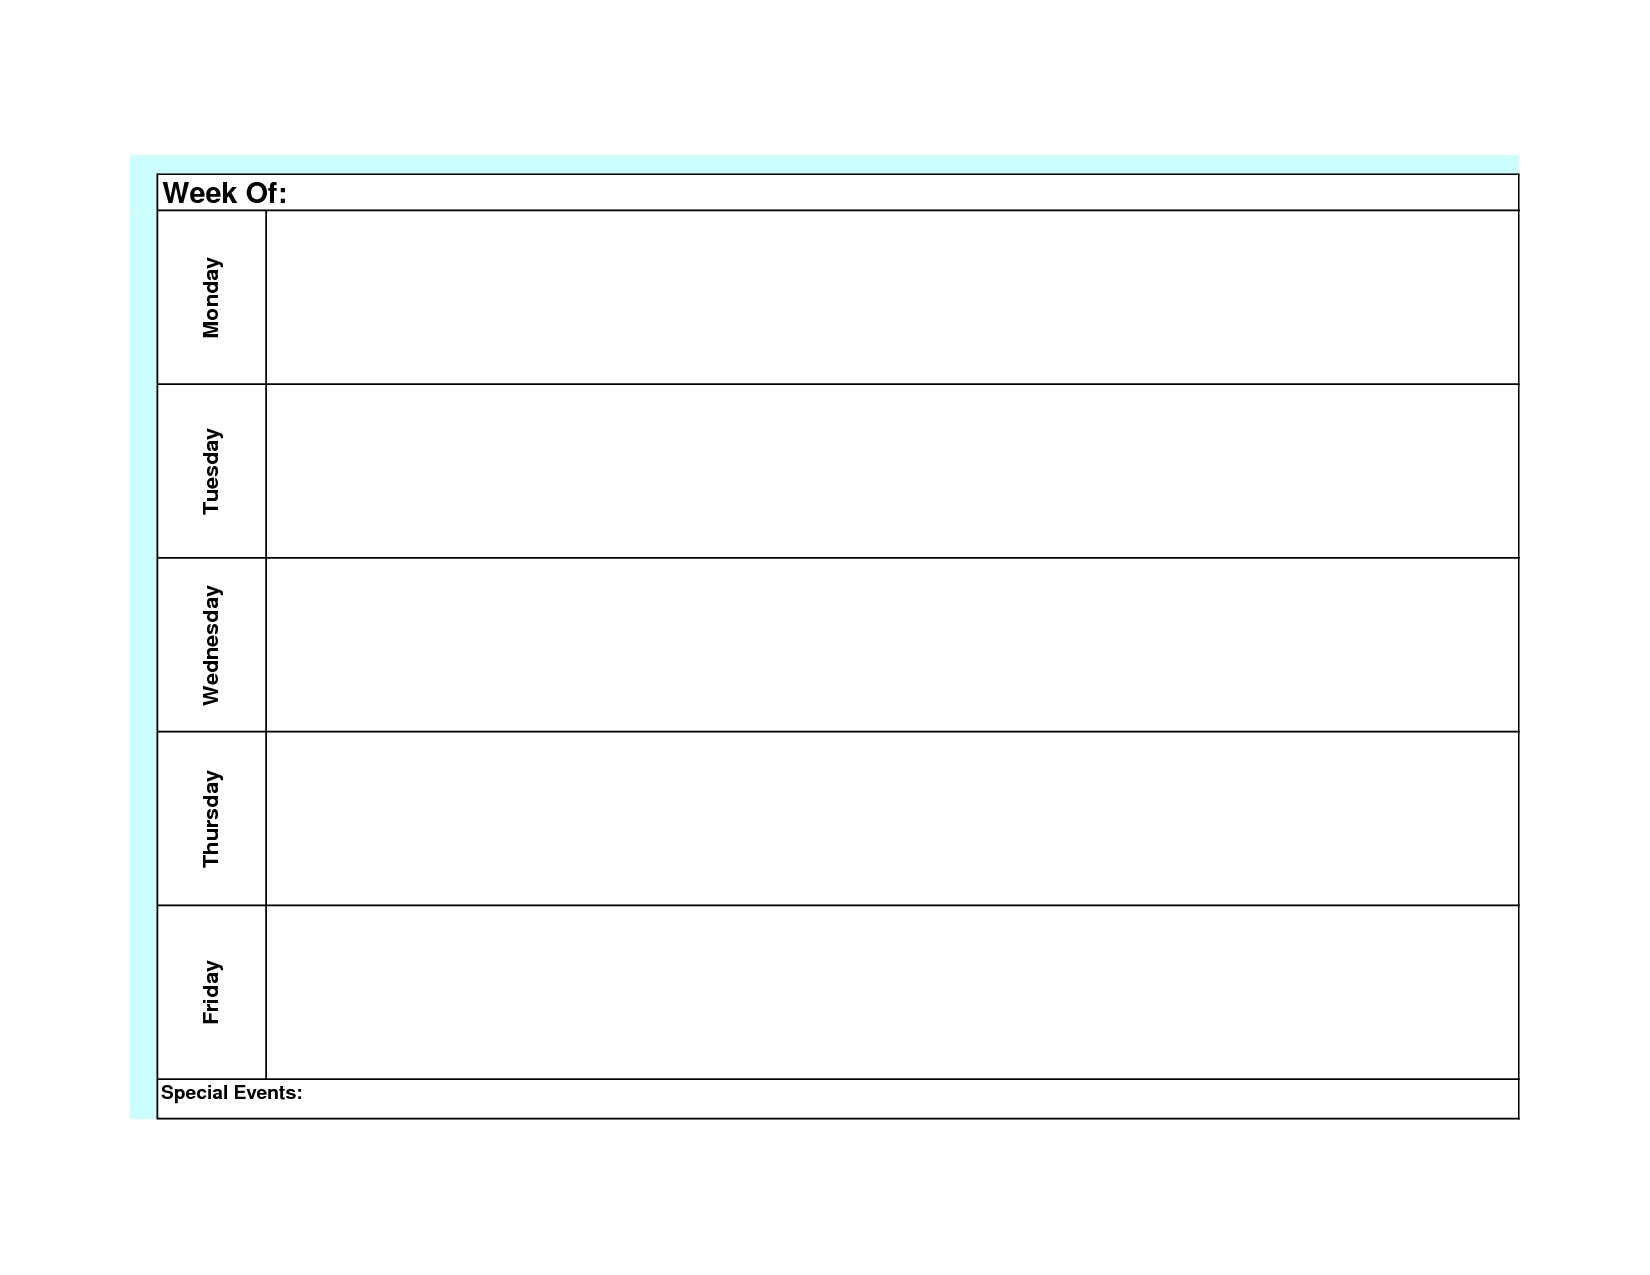 Blank Weekly Calendar Monday Through Friday Template Planner To | Smorad throughout Blank Weekly Calendar Monday To Friday